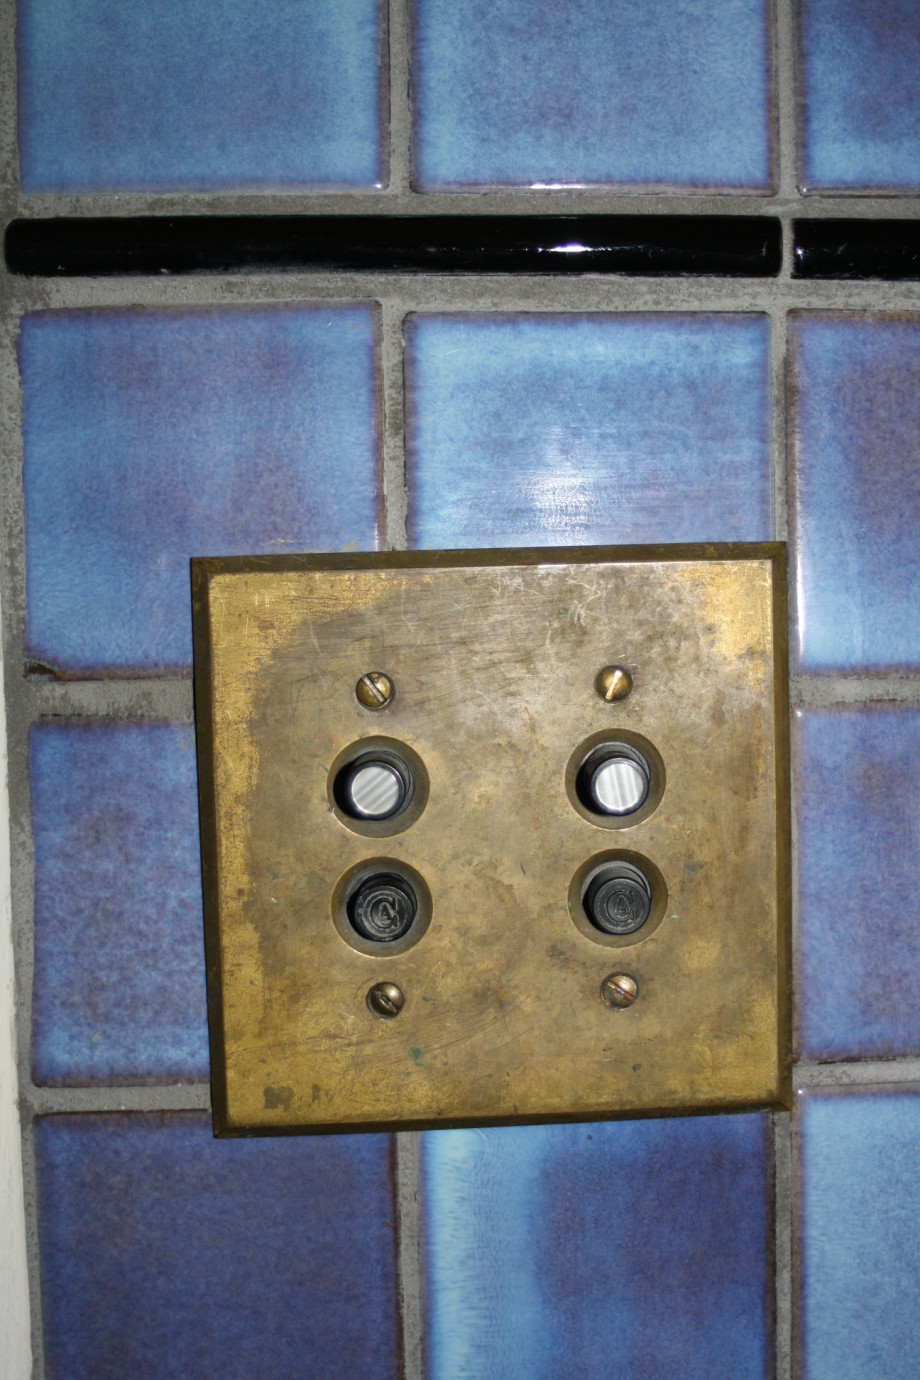 re arcade button light switches. Black Bedroom Furniture Sets. Home Design Ideas